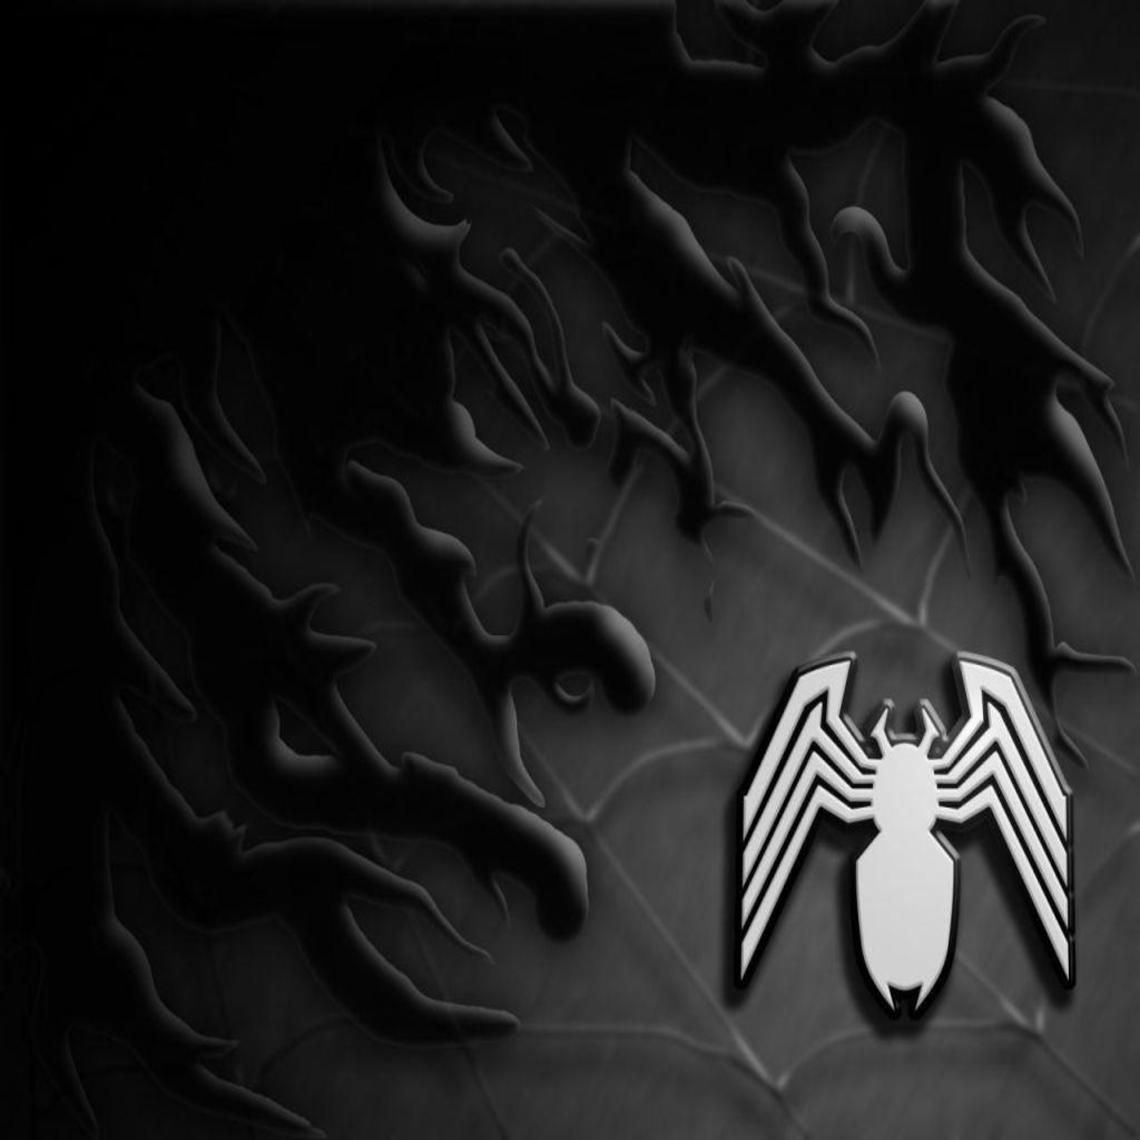 venom symbol wallpaper pinterest venom symbol and rock